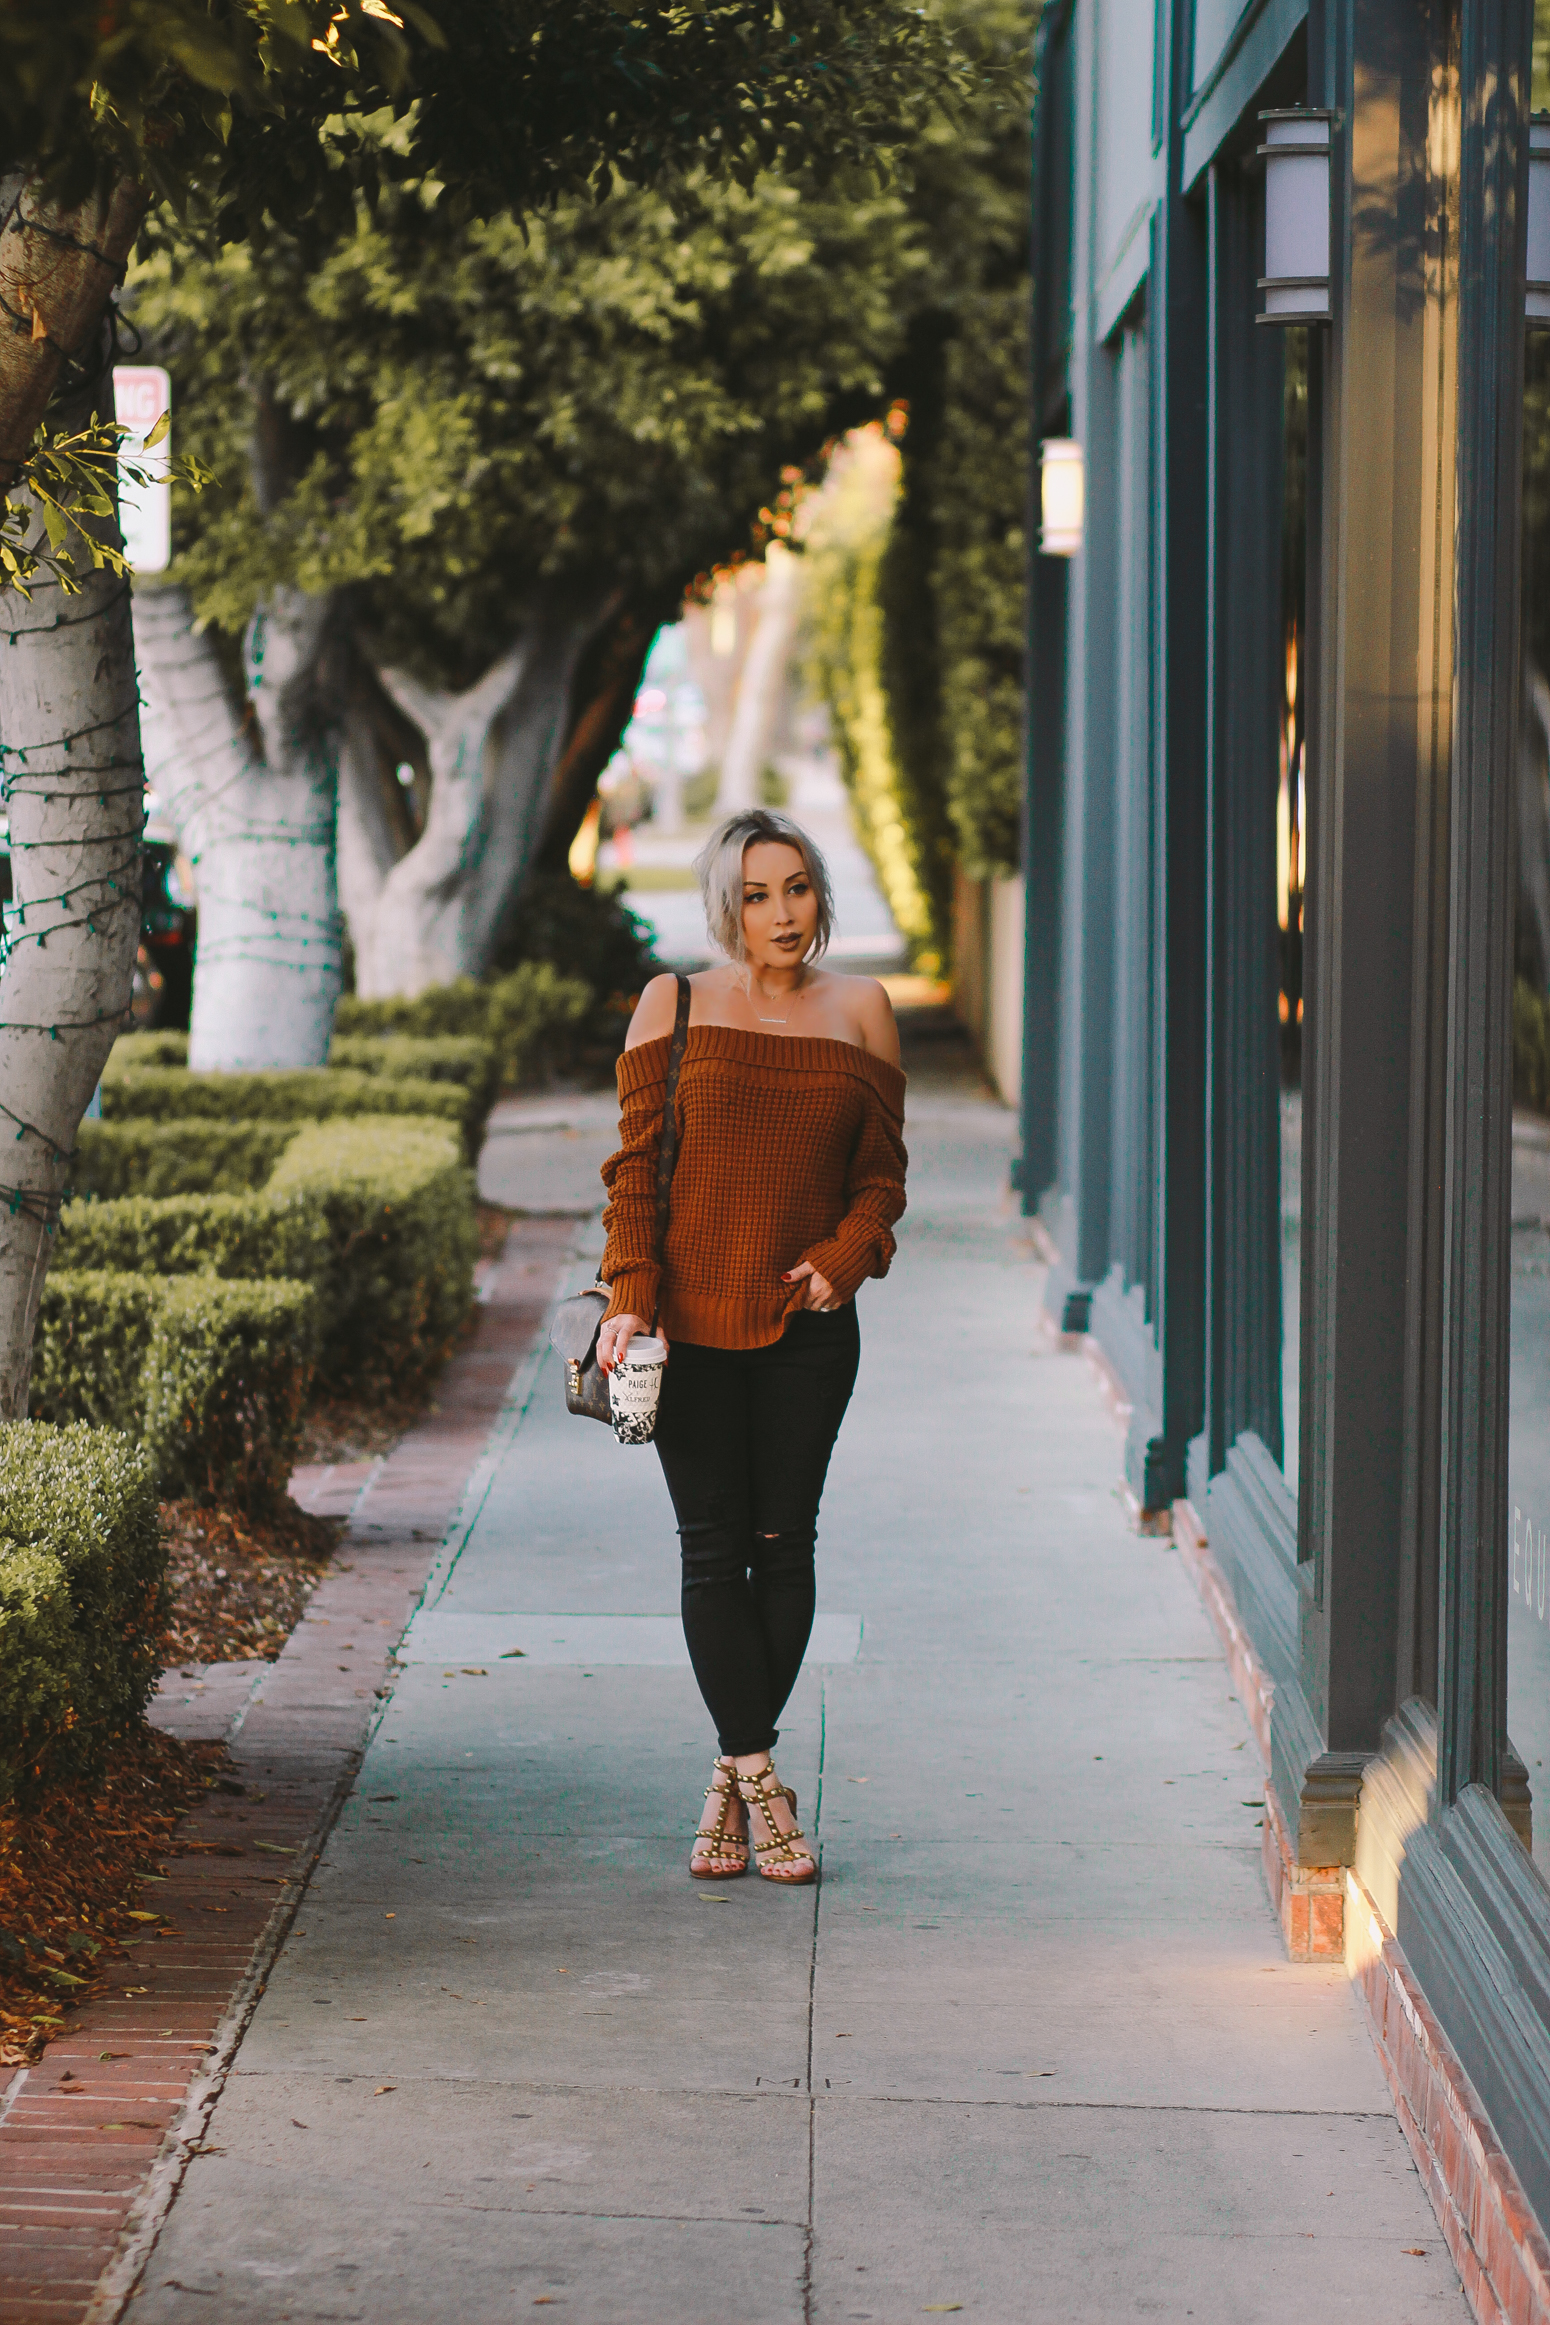 Blondie in the City | Comfy Nordstrom Sweater